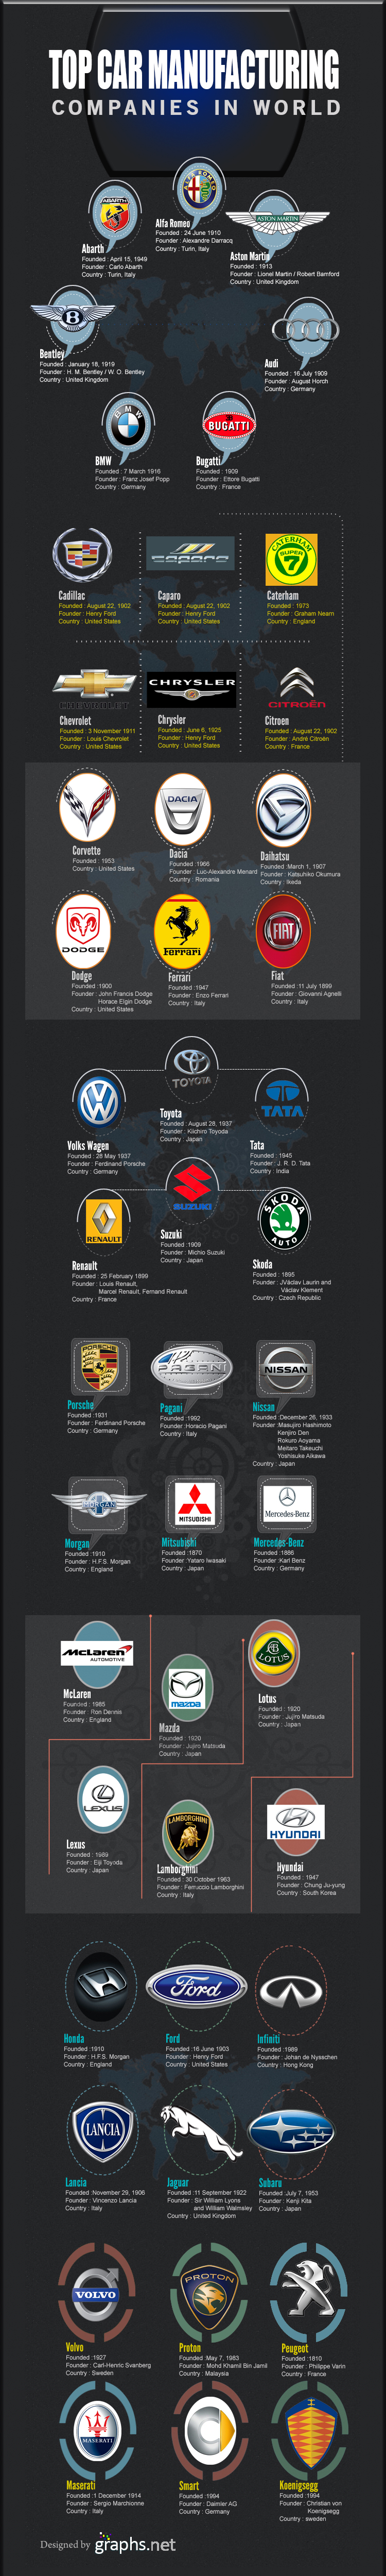 Top Car Manufacturing Companies in the World